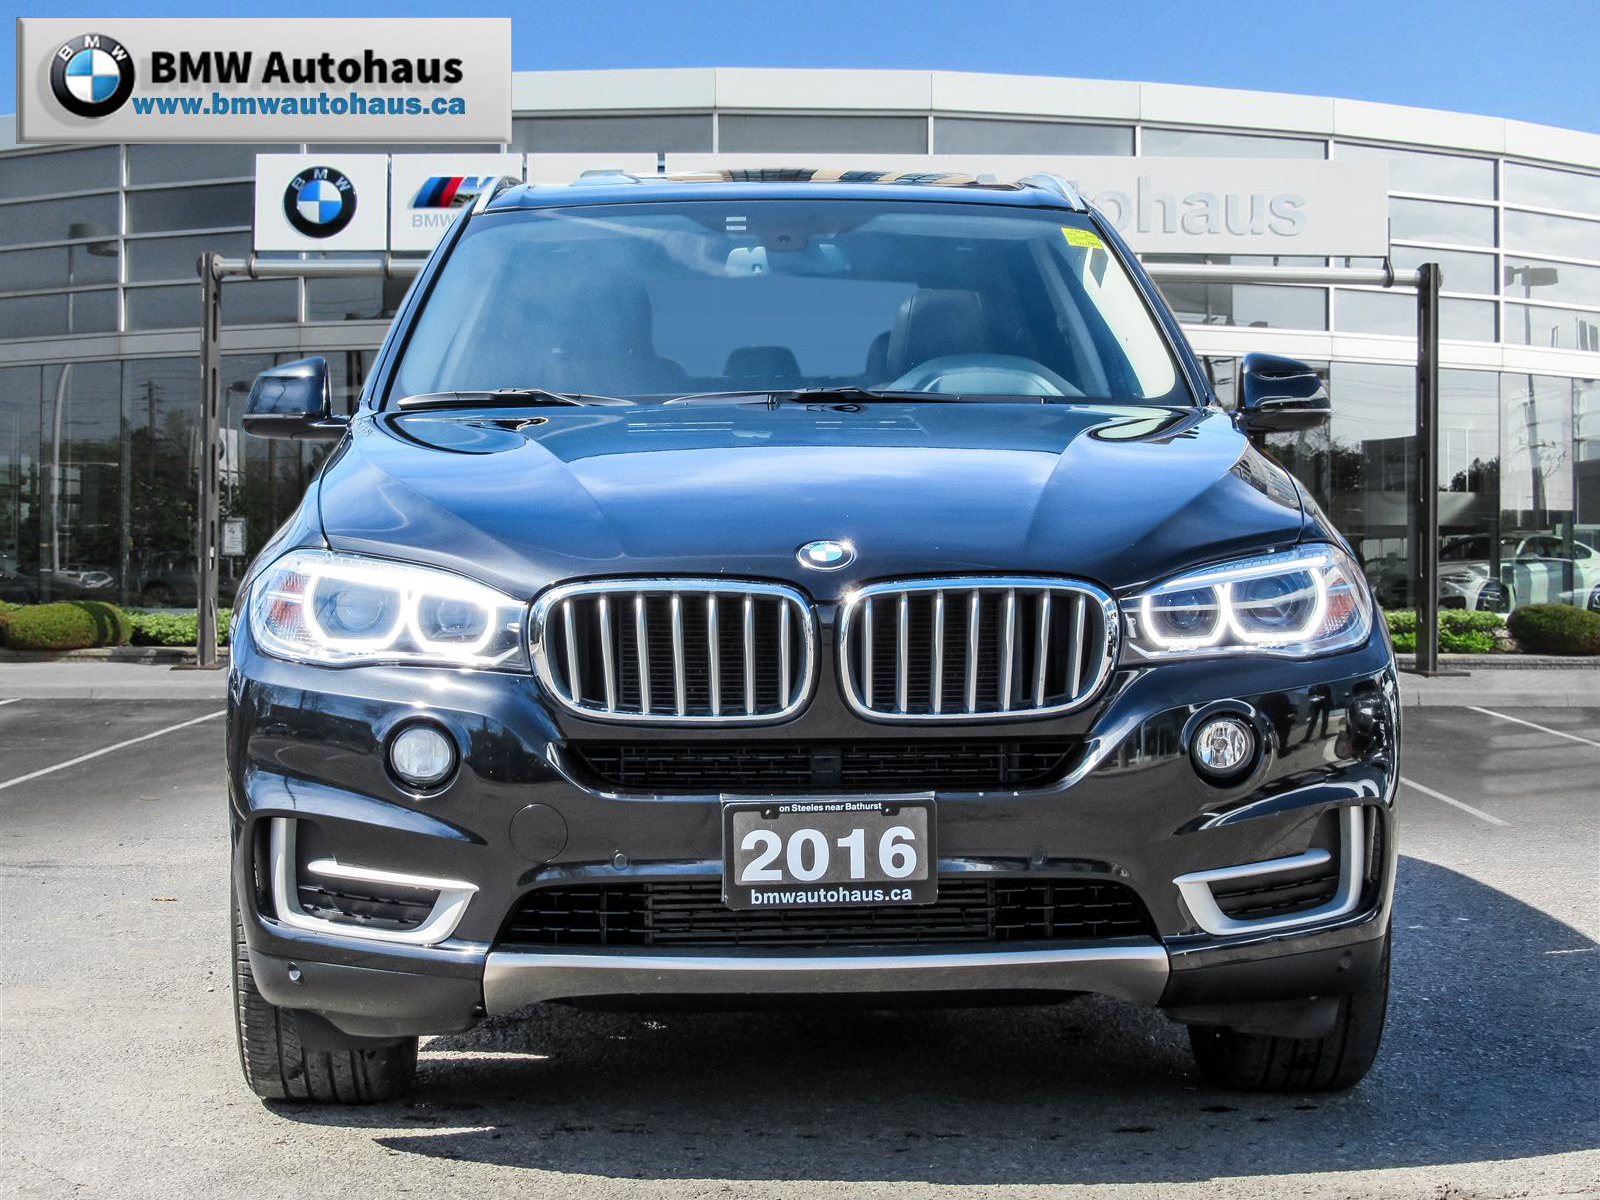 Used 2016 BMW X5 in Thornhill,ON